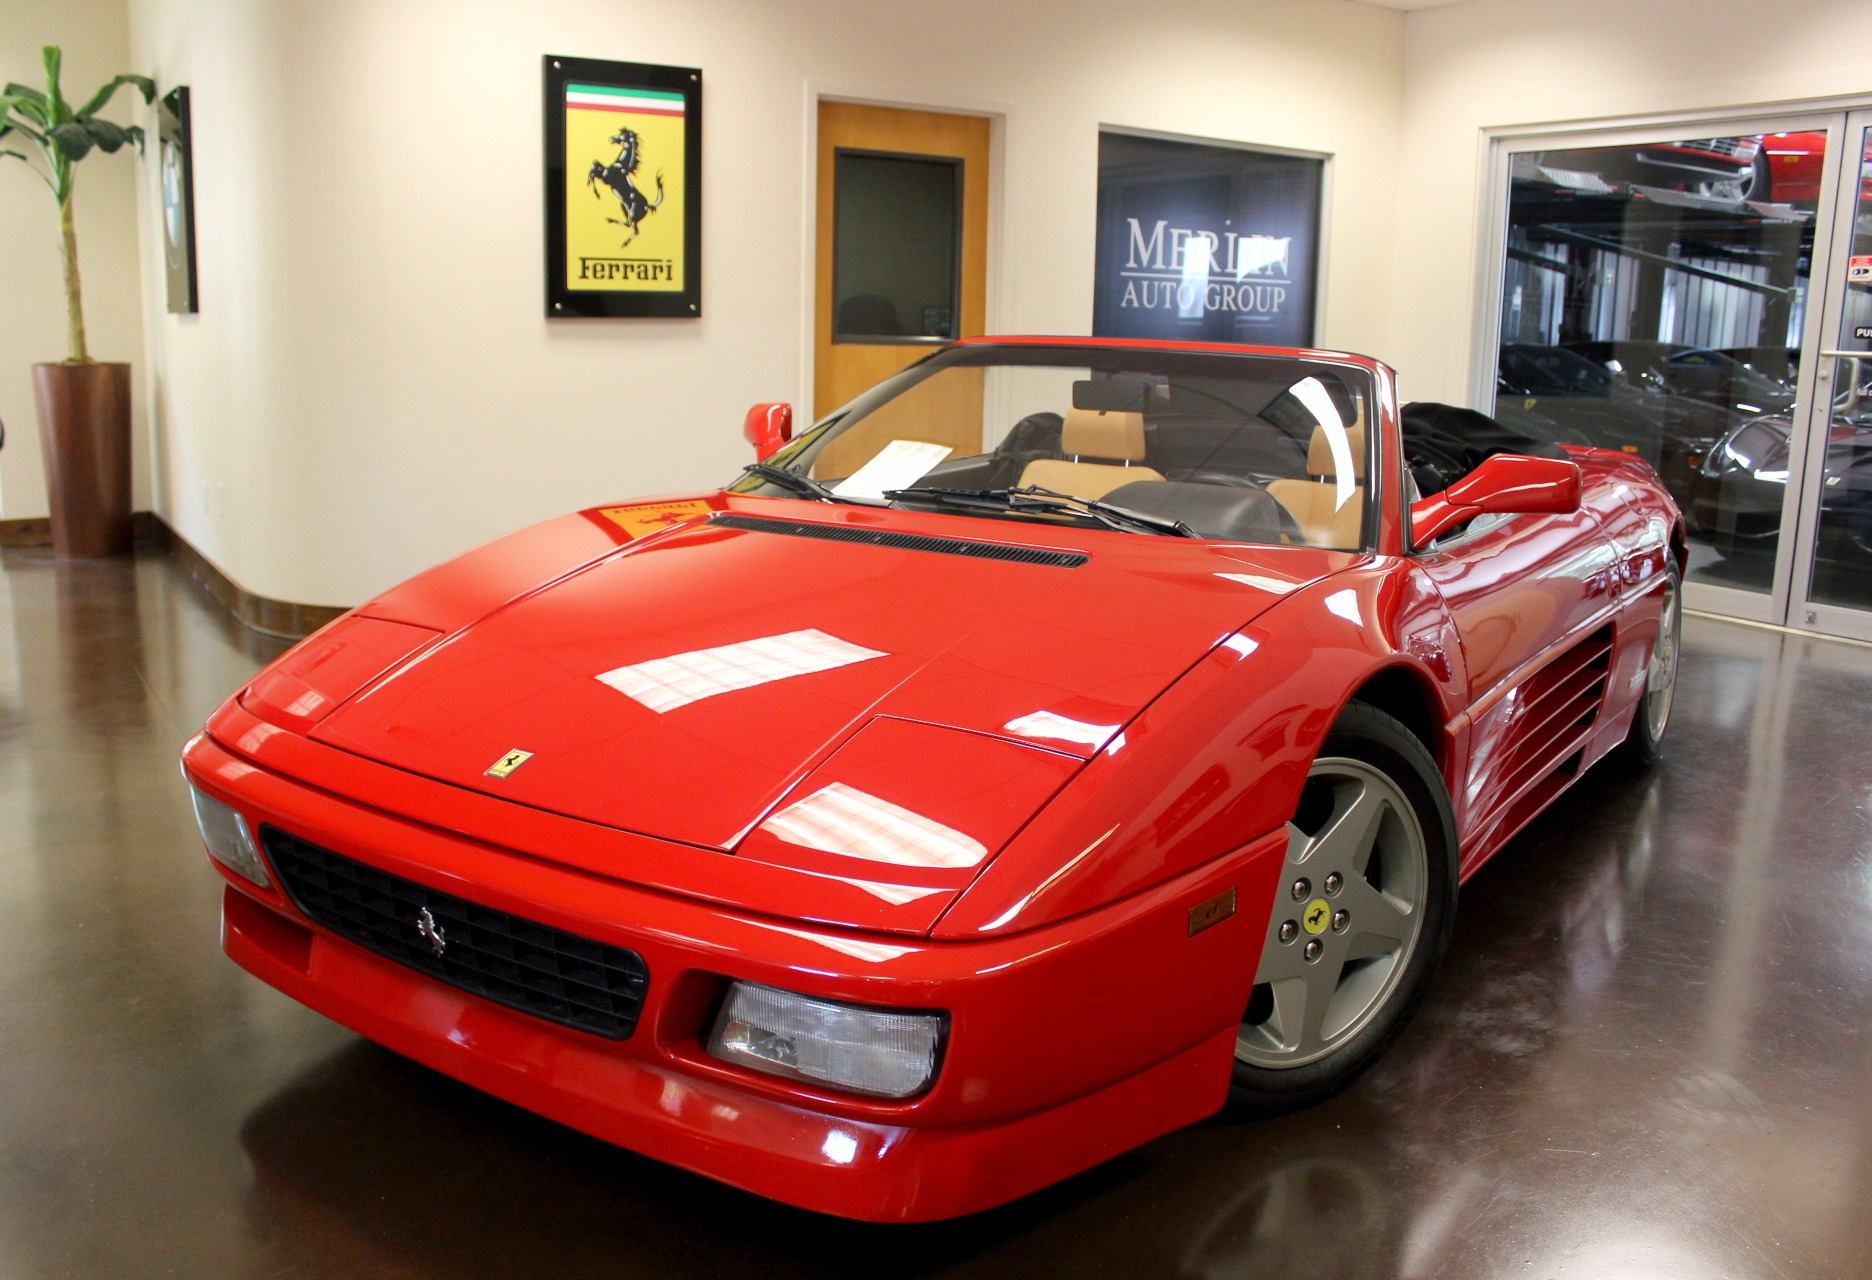 Used 1995 ferrari 348 stock p3047a ultra luxury car from